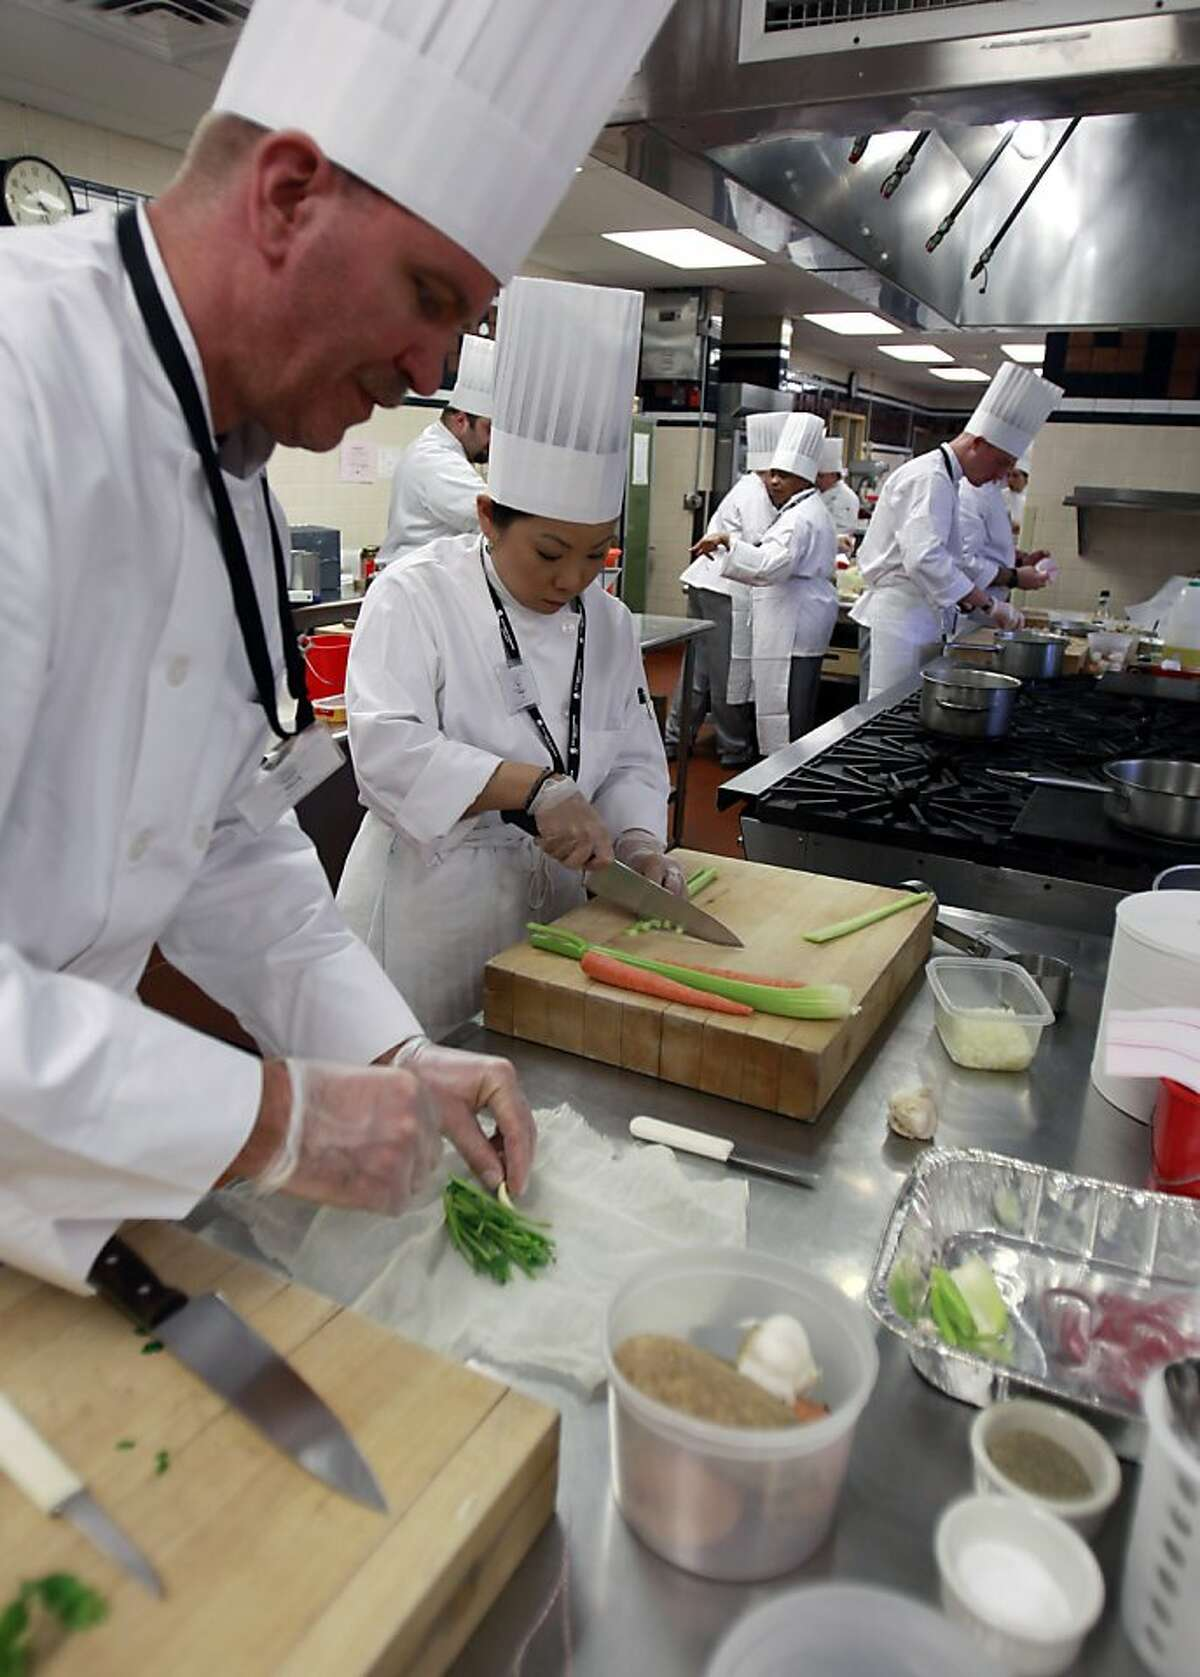 Mark Engelsman, left, and Sandra Lee of the Wounded Warrior Project prepare a recipe during culinary bootcamp at the Culinary Institute of America in Hyde Park, N.Y., on Wednesday, Feb. 15, 2012. (AP Photo/Mike Groll)